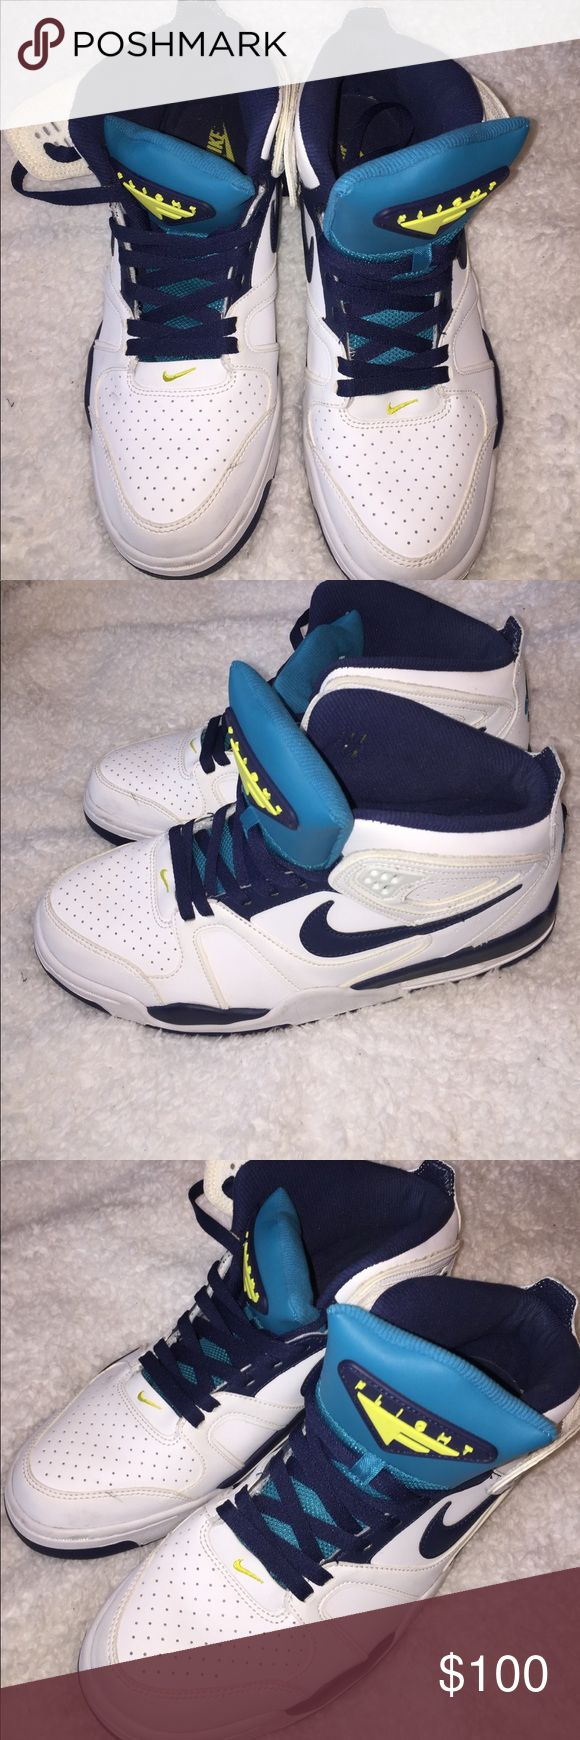 Nike Air flight falcon Basketball shoe Condition: Preowned. Worn once    Color: white, navy, turqoiuse and lime green    Measurements:   Materials:   Suggested Styling tips: Nike Shoes Sneakers